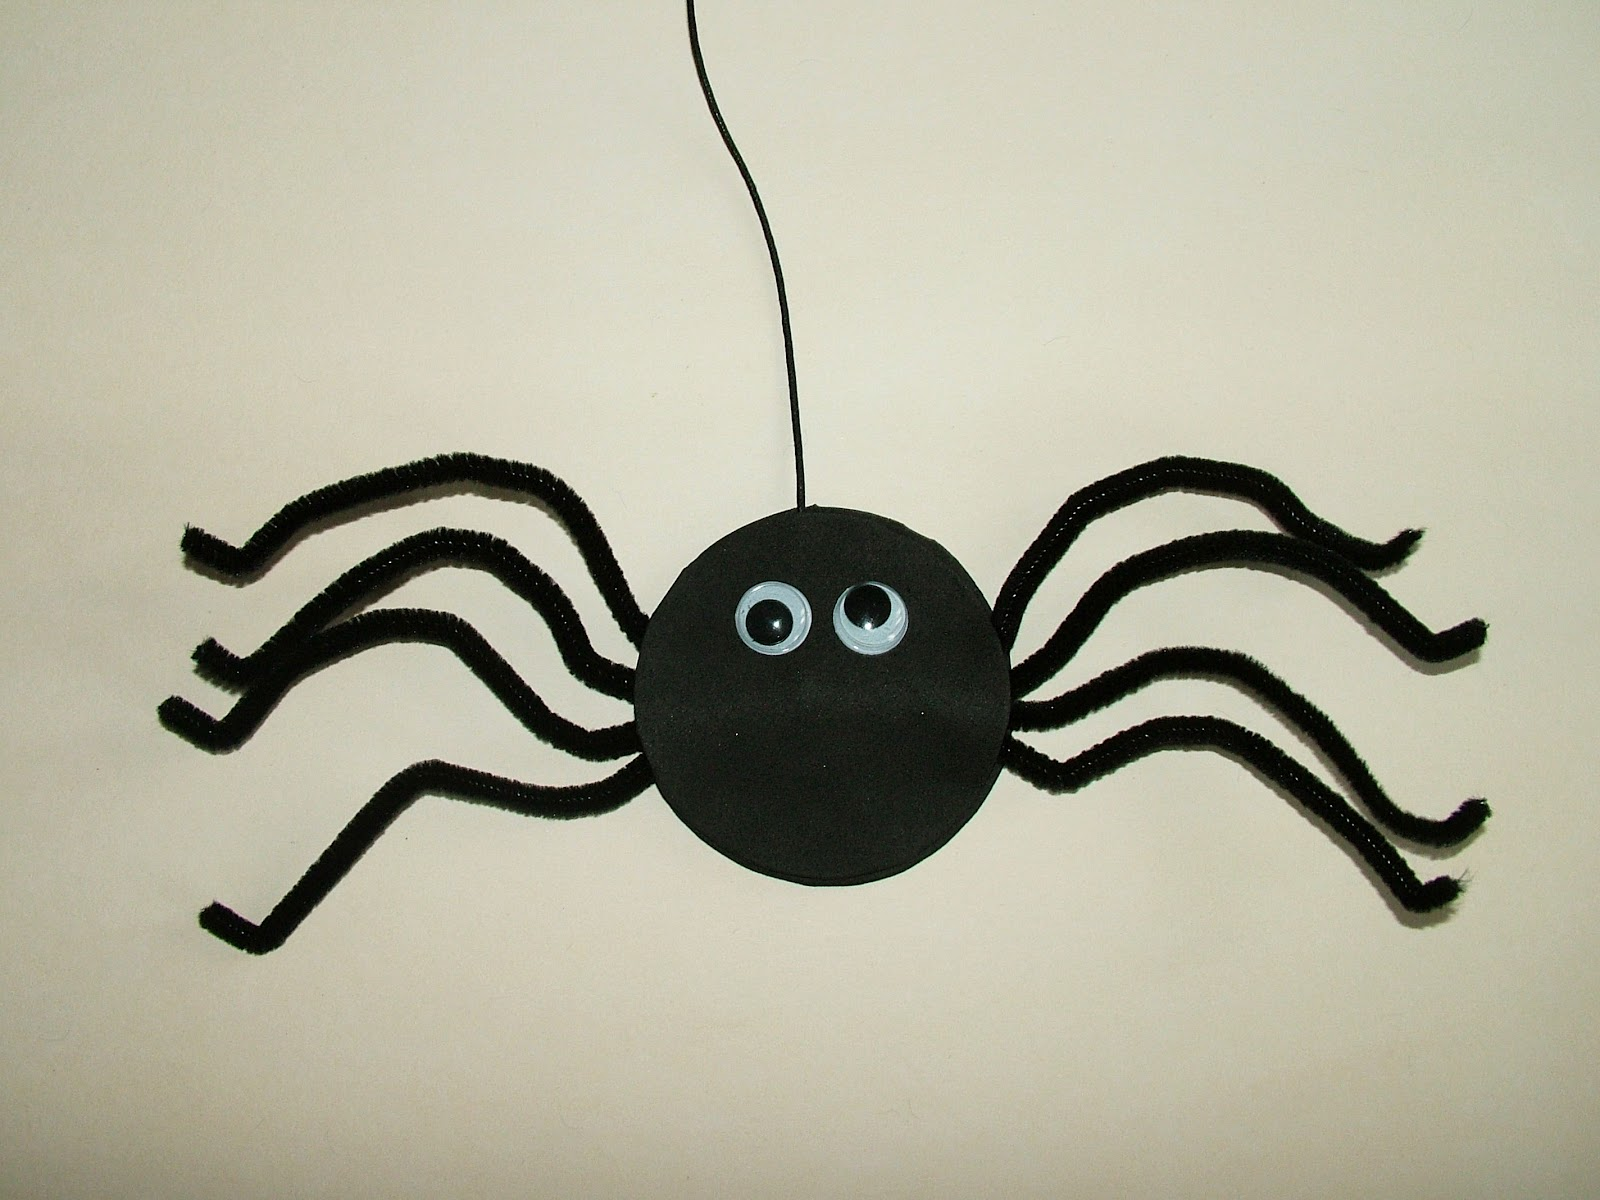 Art Amp Craft Tutorial For Kids  How To Make A Halloween Spider Halloween Crafts Quick